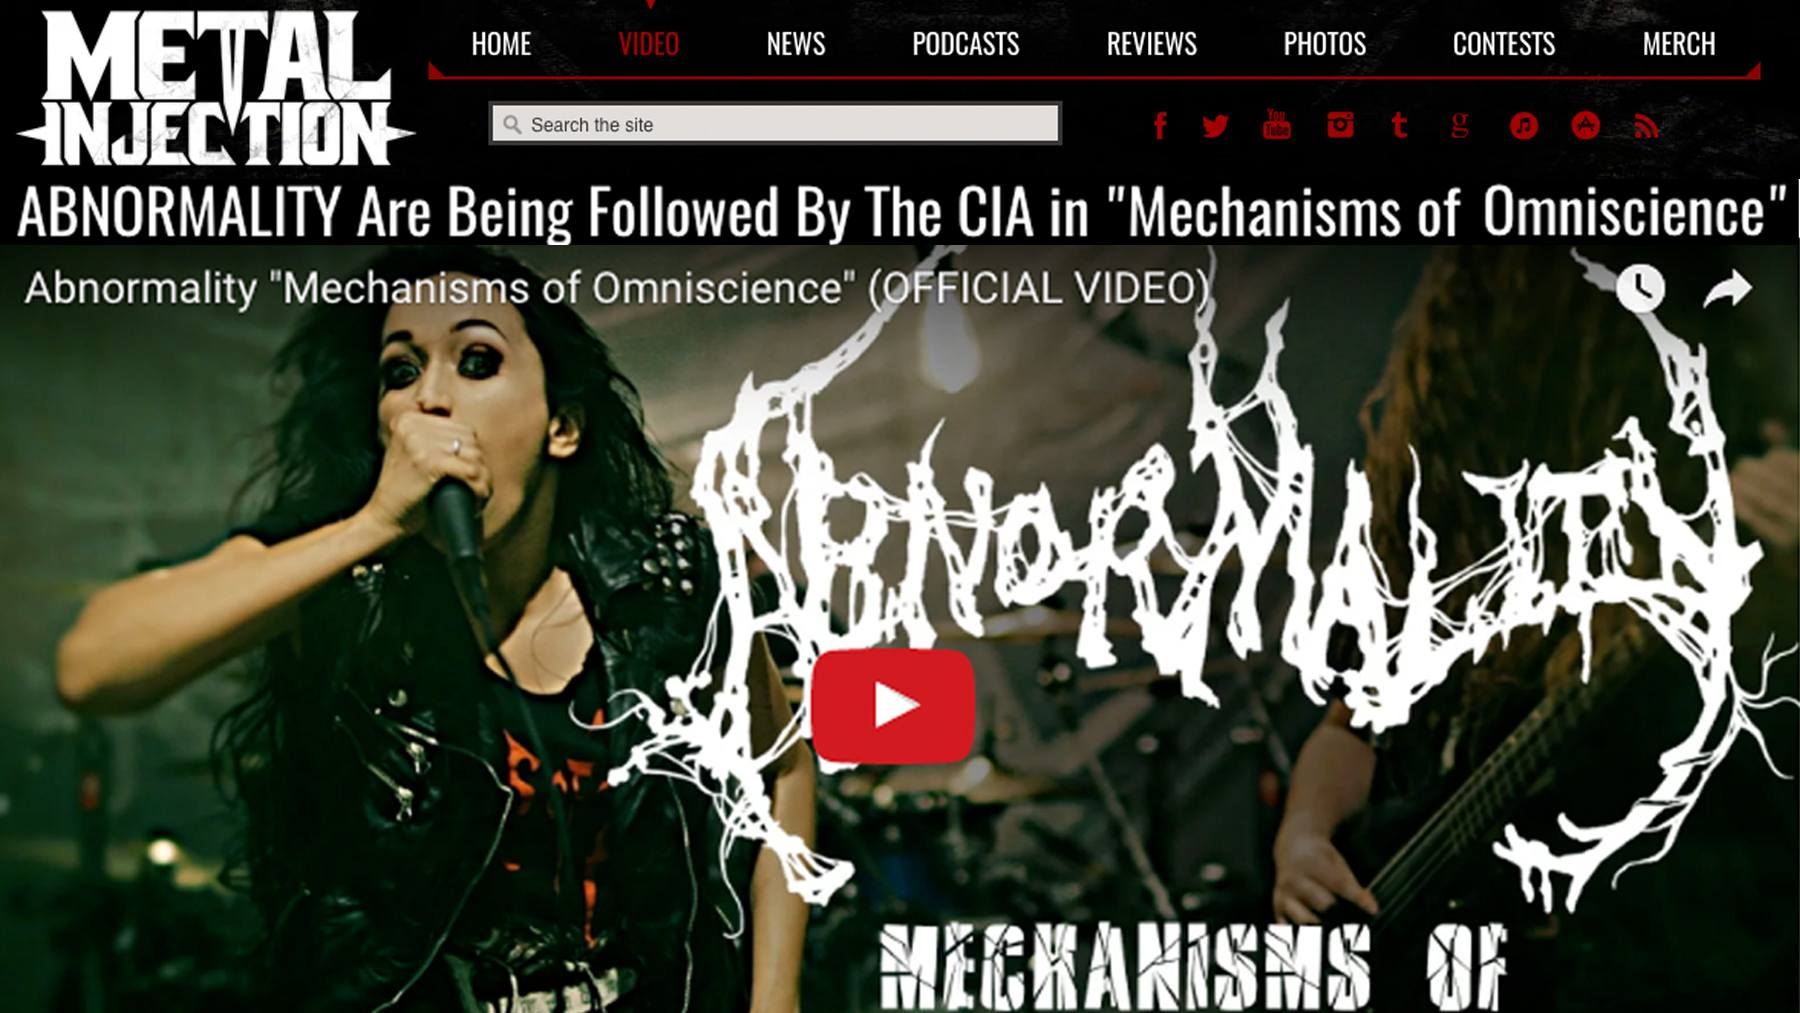 ABNORMALITY MECHANISM METAL INJECTION